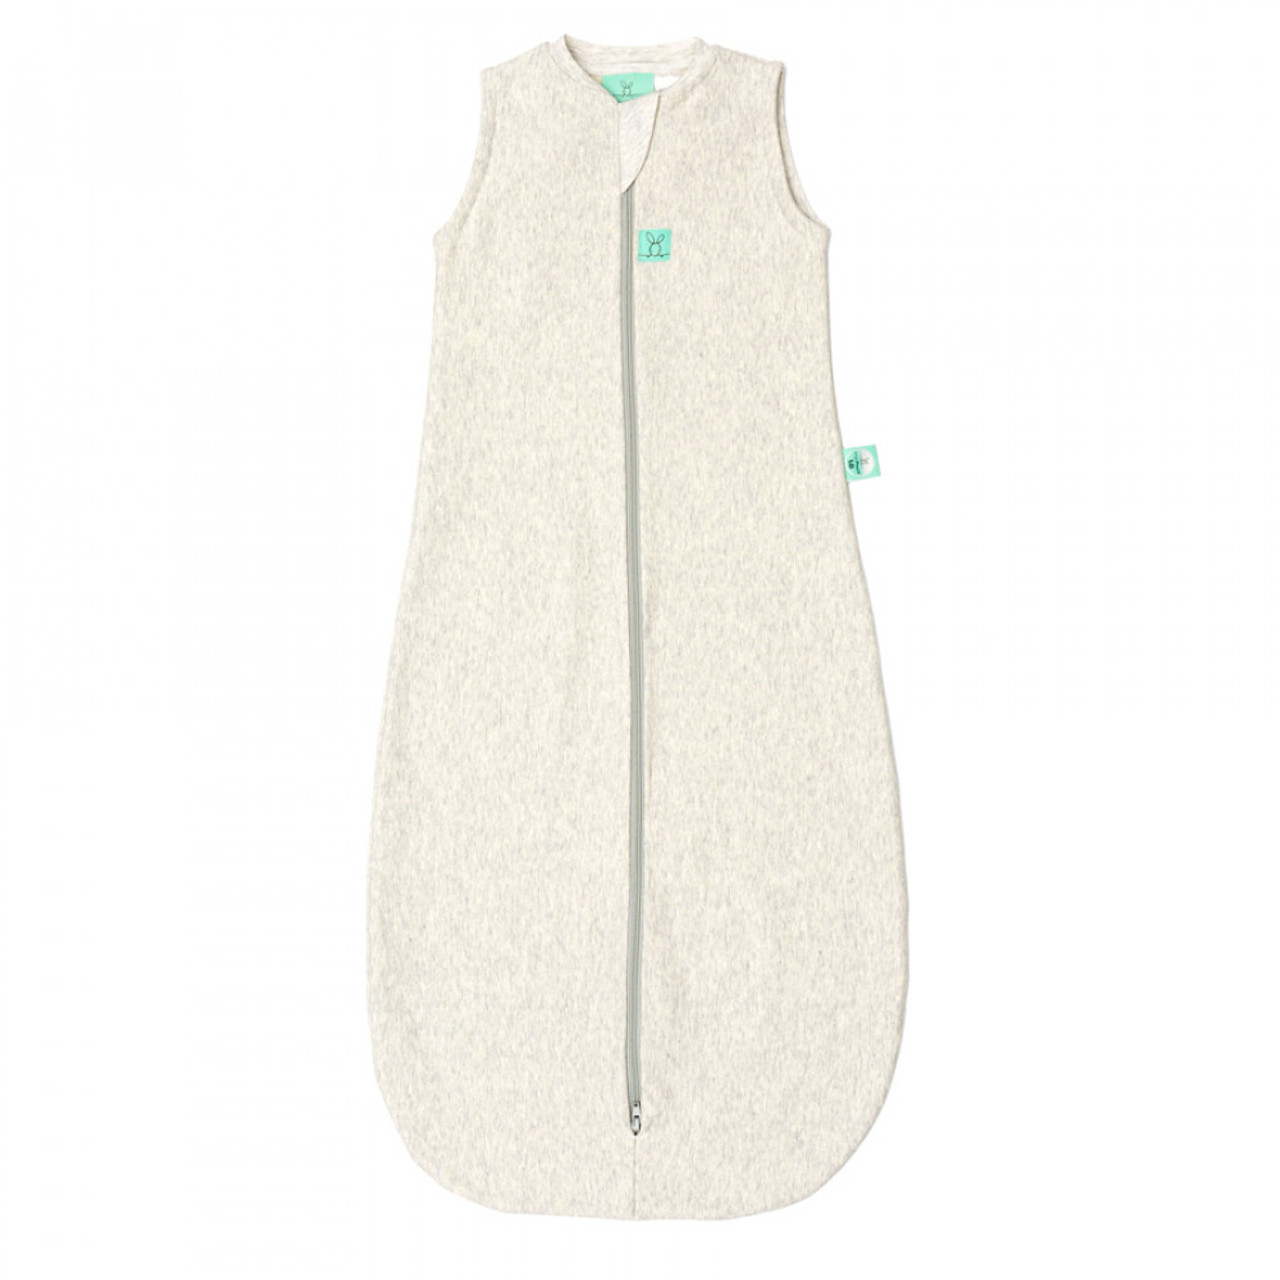 ergoPouch Jersey Sleeping Bag 1.0Tog 8-24 Months GREY MARLE at Baby Barn Discounts